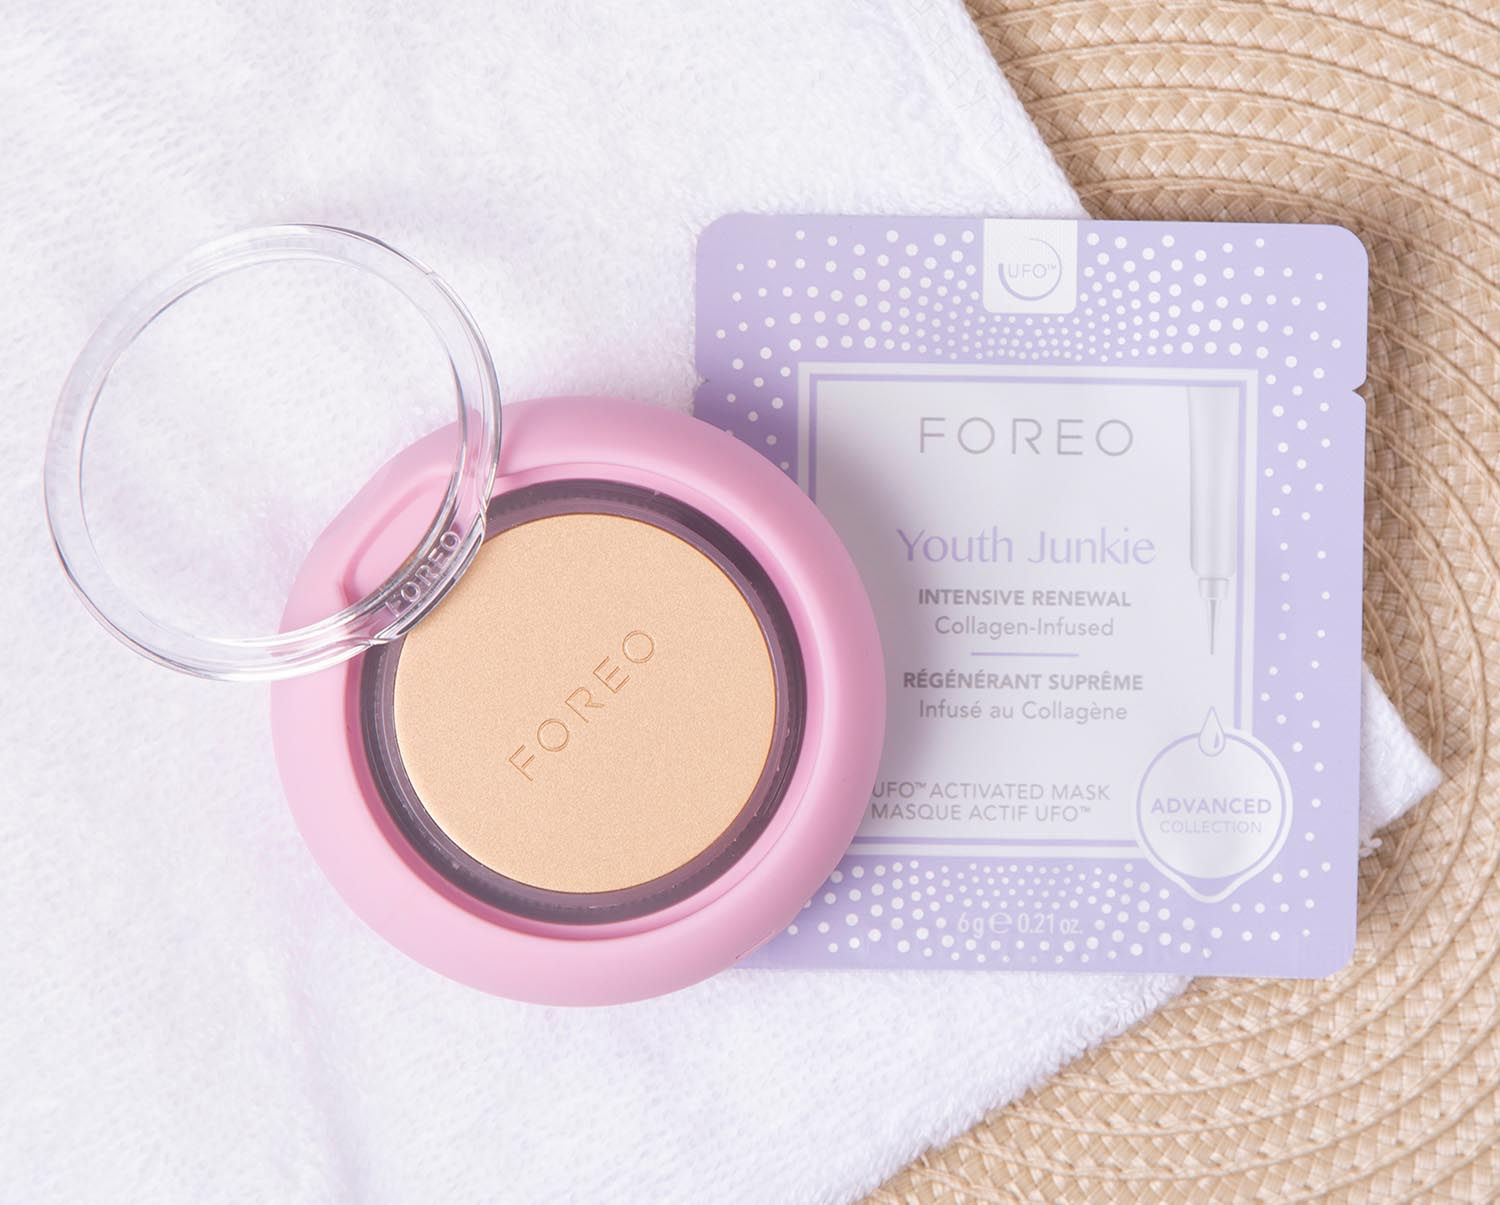 Foreo Youth Junkie Mask